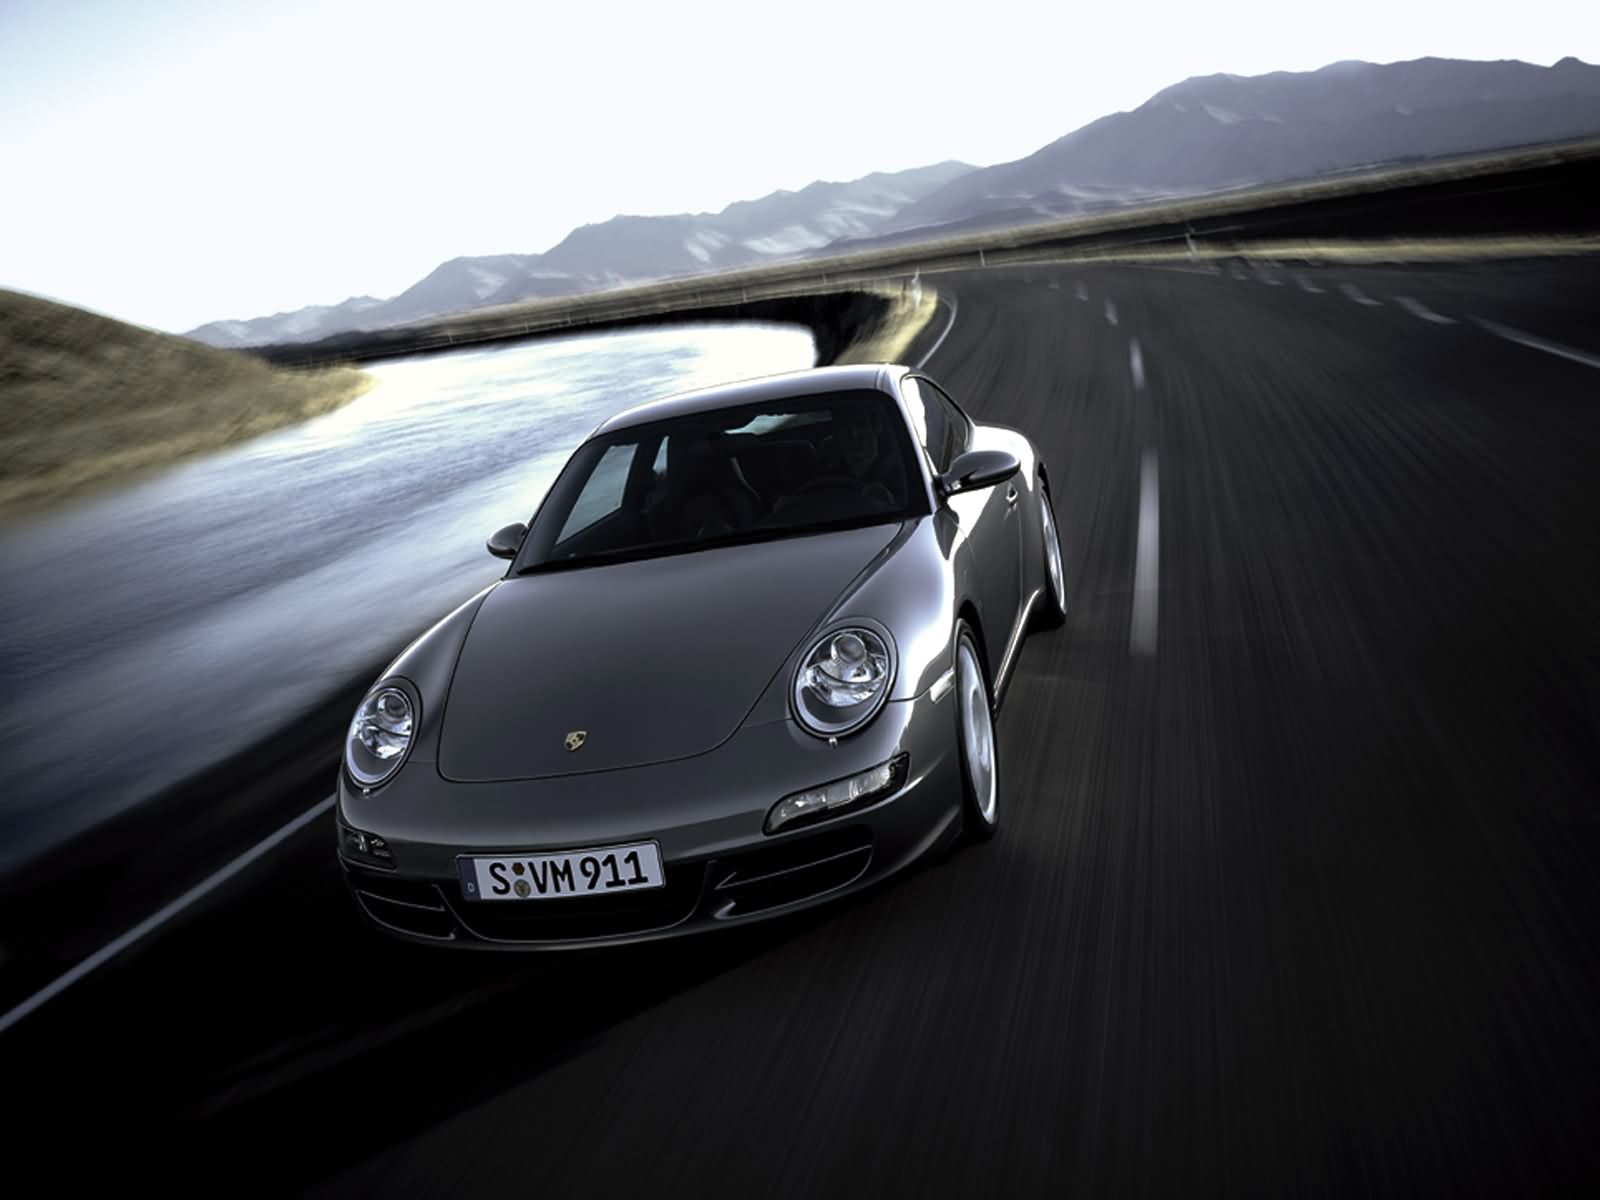 Porsche 997 911 Carrera S photo 18207